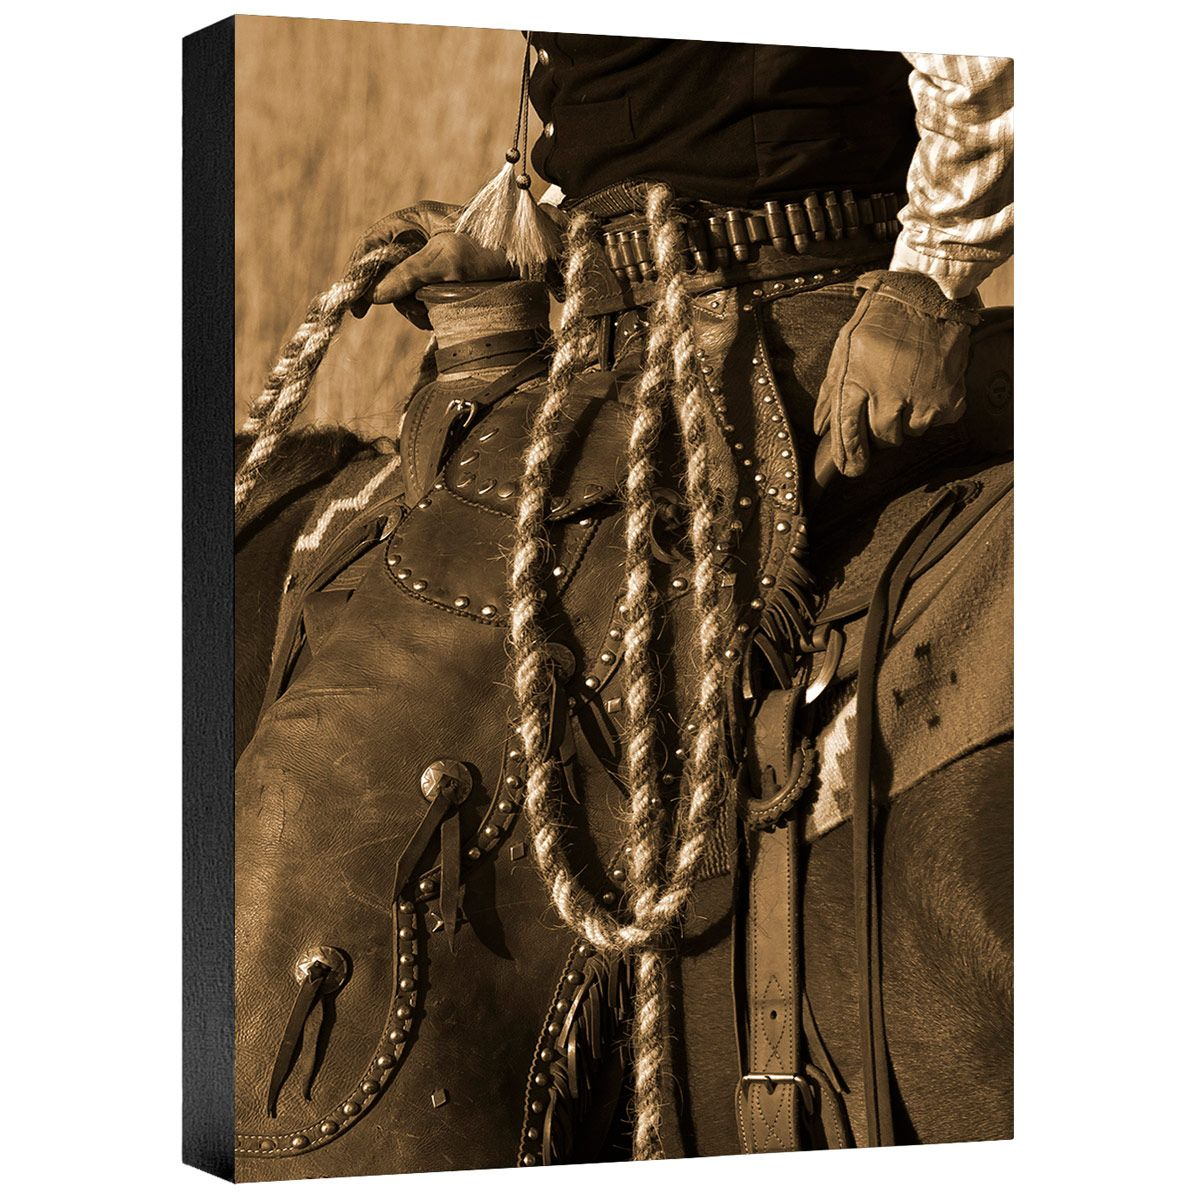 Hired Hand III Gallery Wrapped Canvas